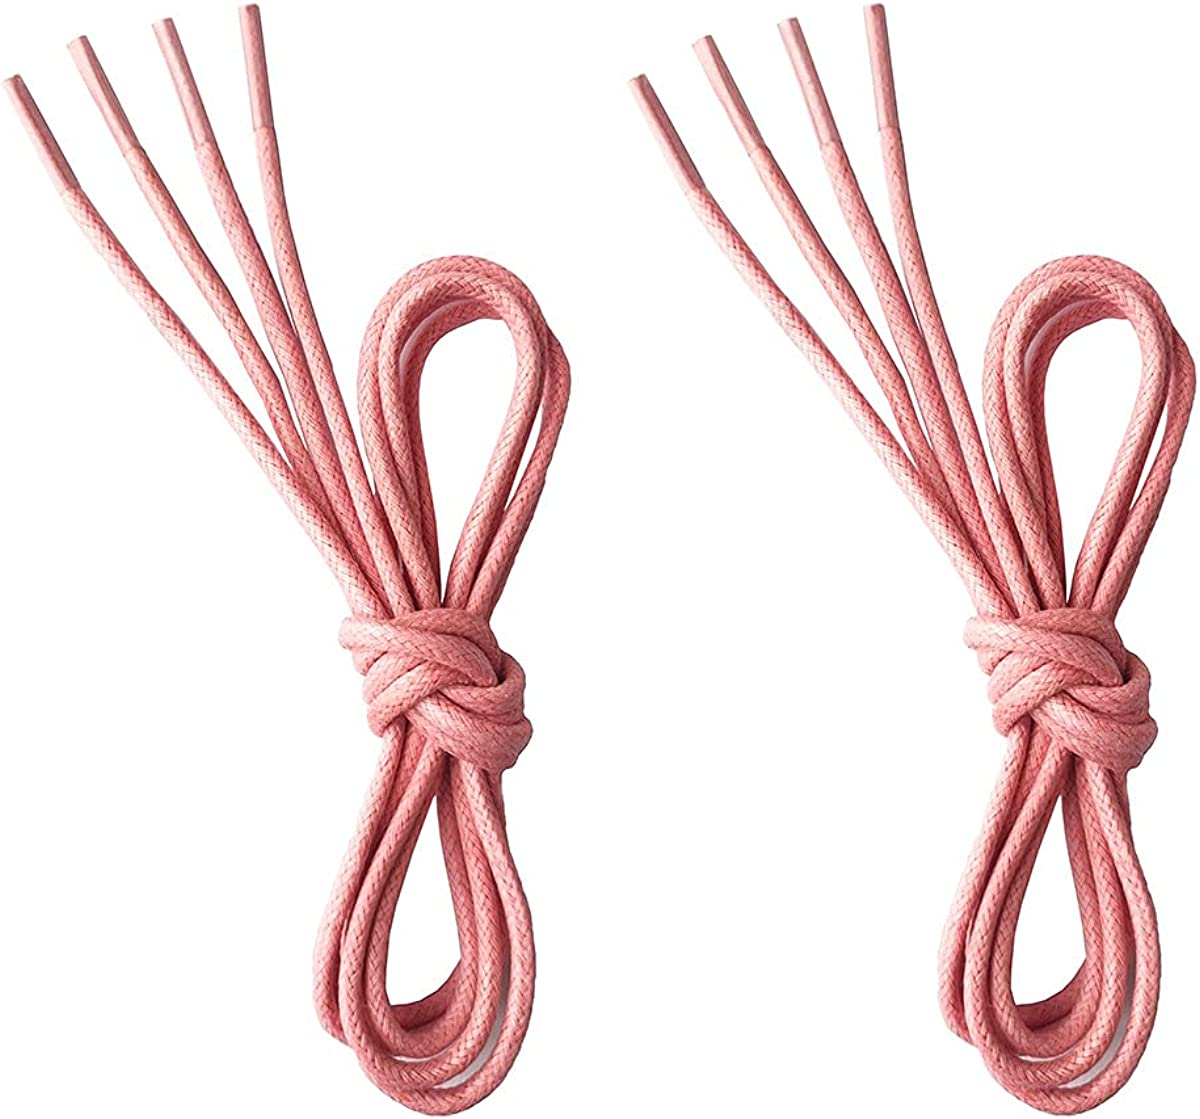 """VSUDO Waxed Round Dress Shoelaces, 1/8"""" Thick Shoe Laces for Oxford or Dress Shoes (2 Pairs) : Clothing, Shoes & Jewelry"""